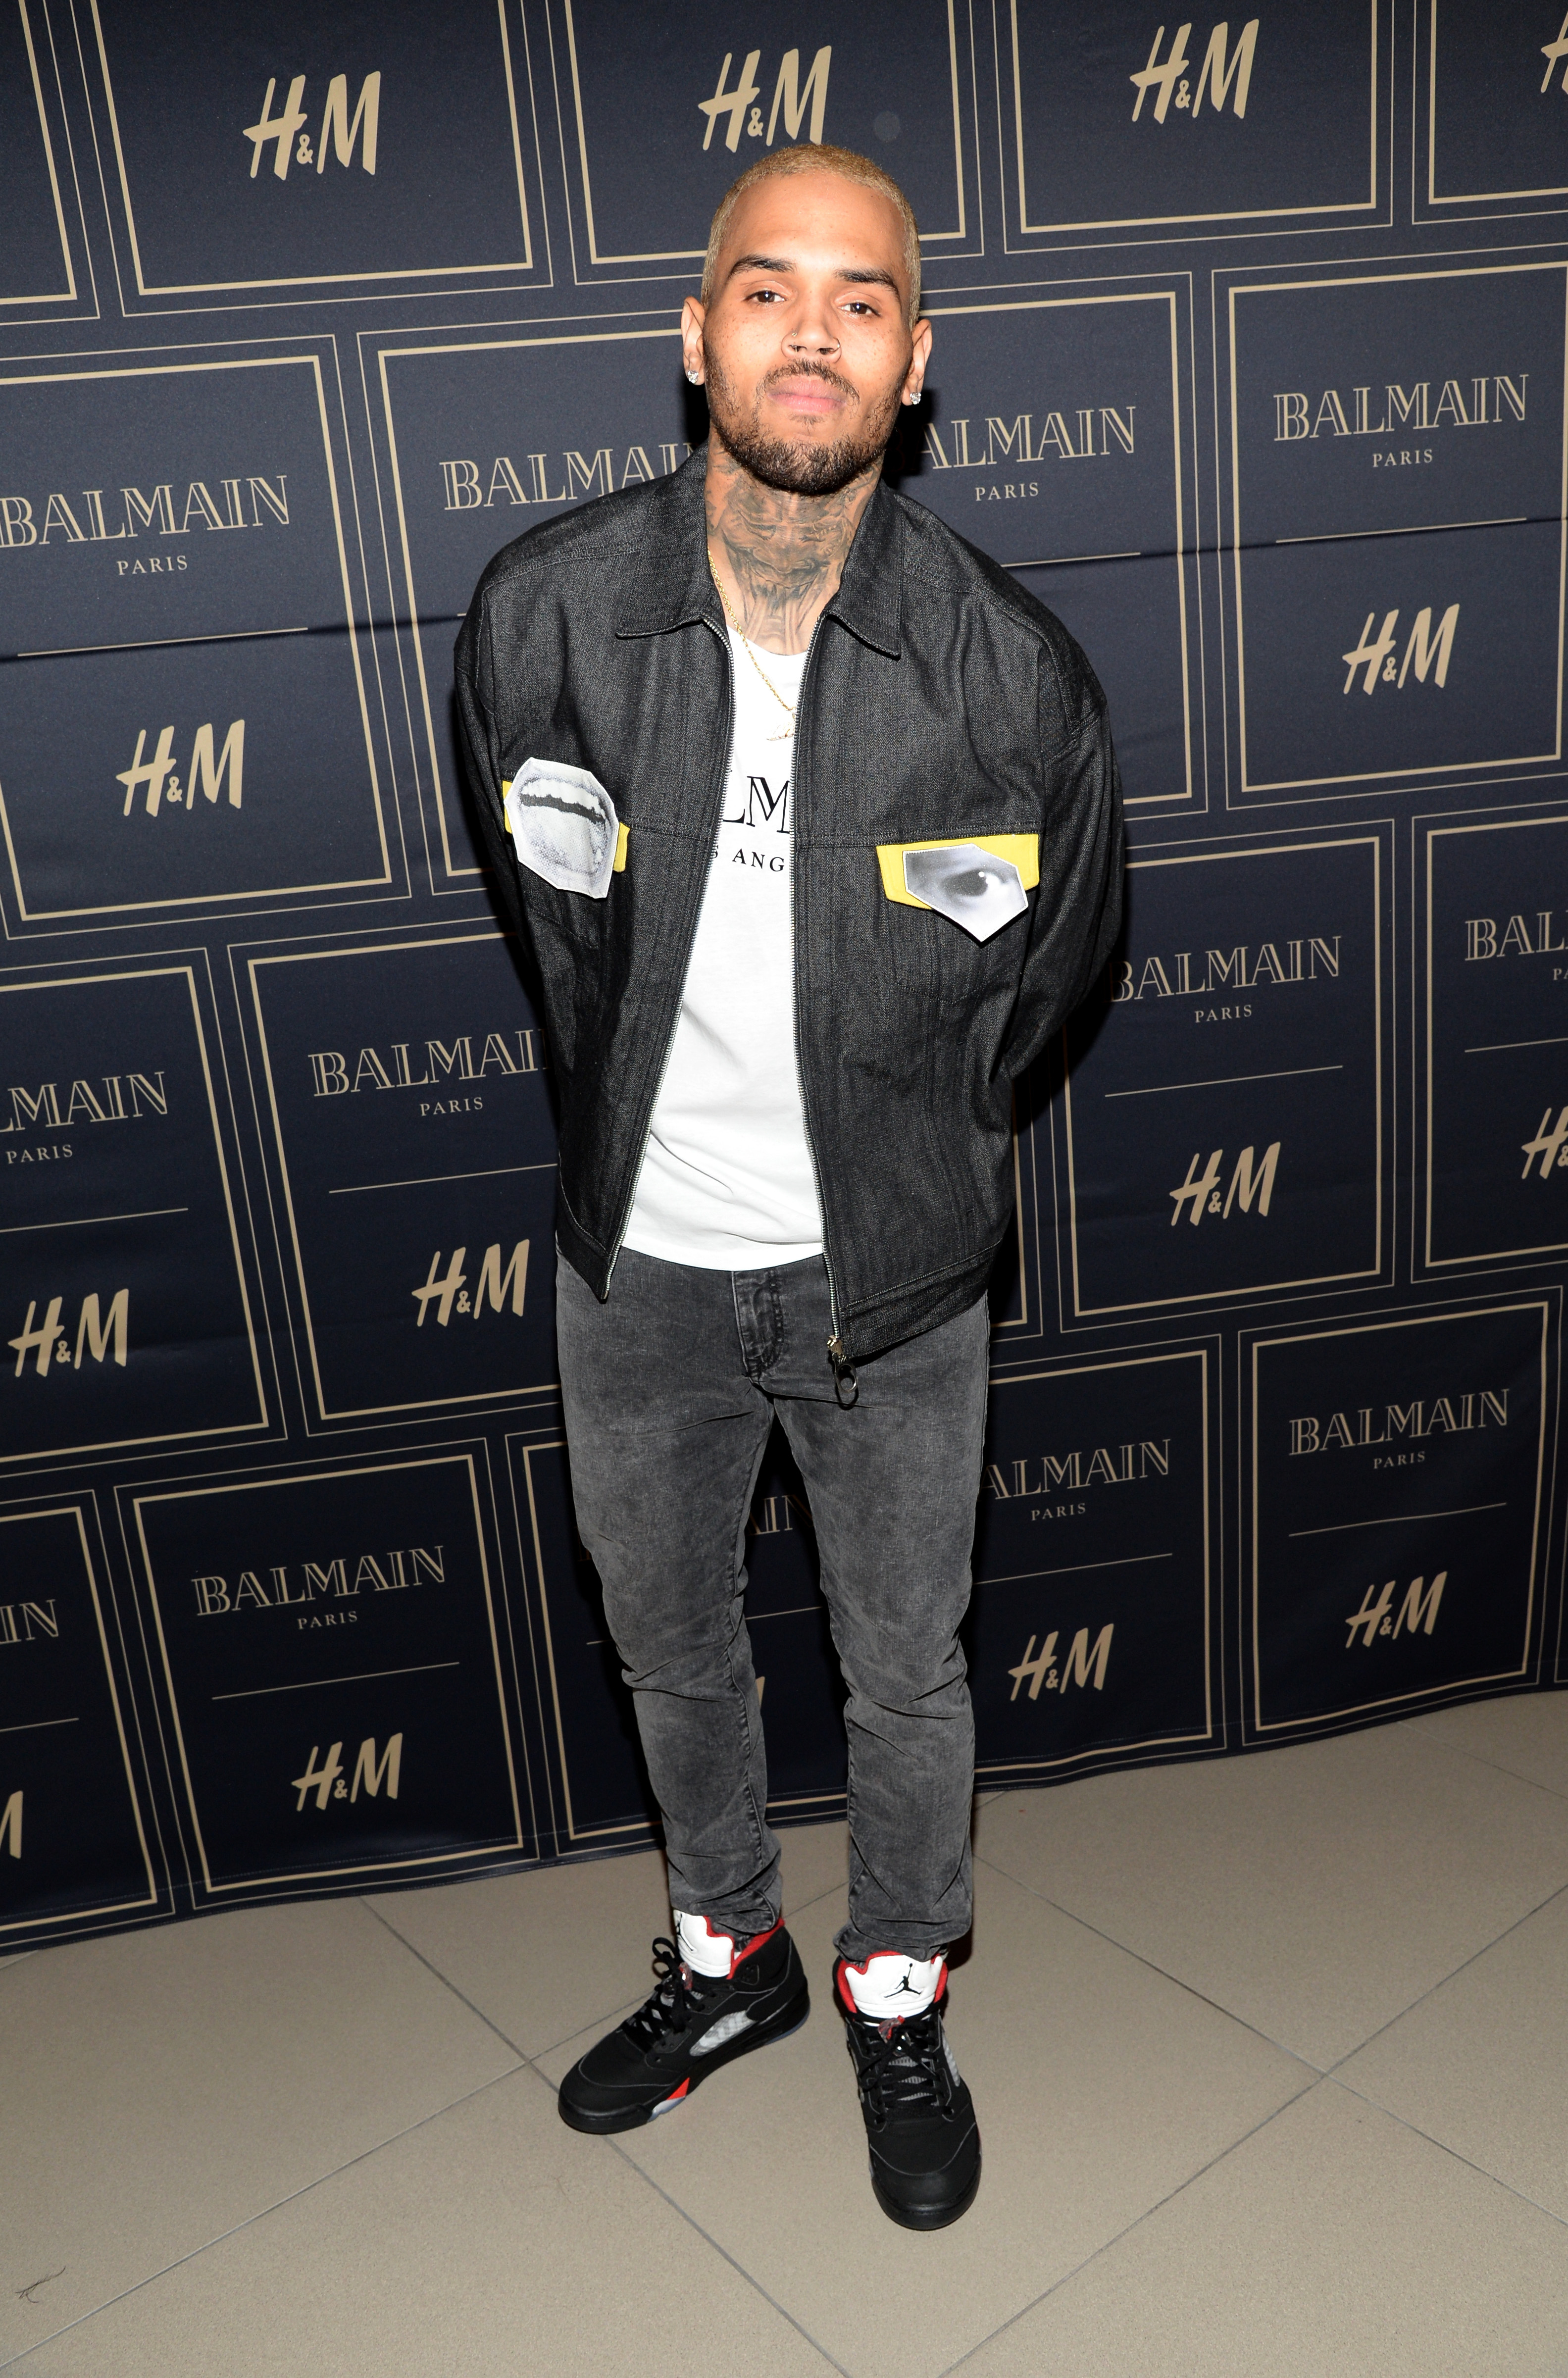 Chris Brown - The Hollywood Gossip